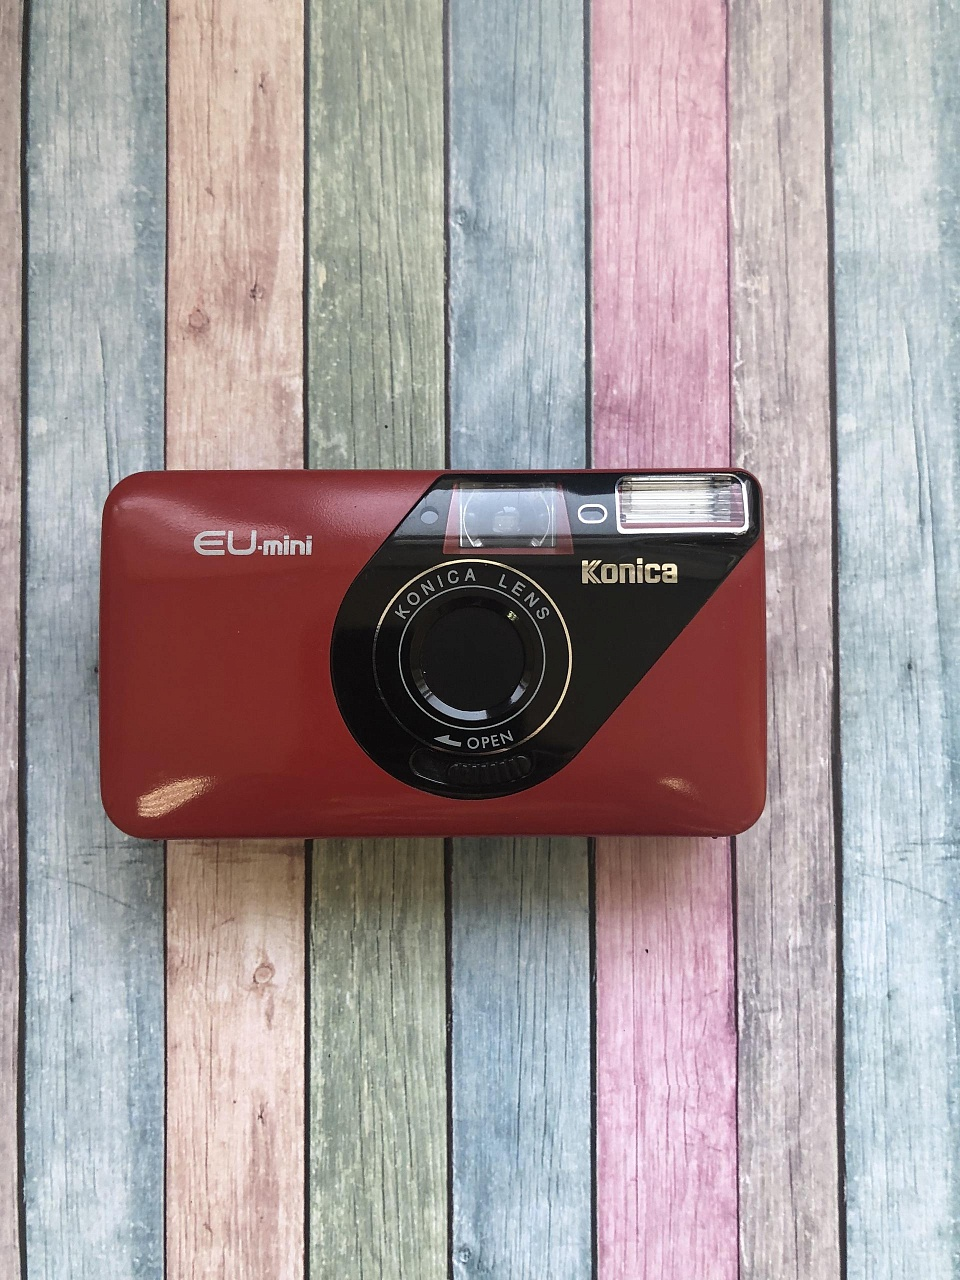 Konica EU-mini red фото №1